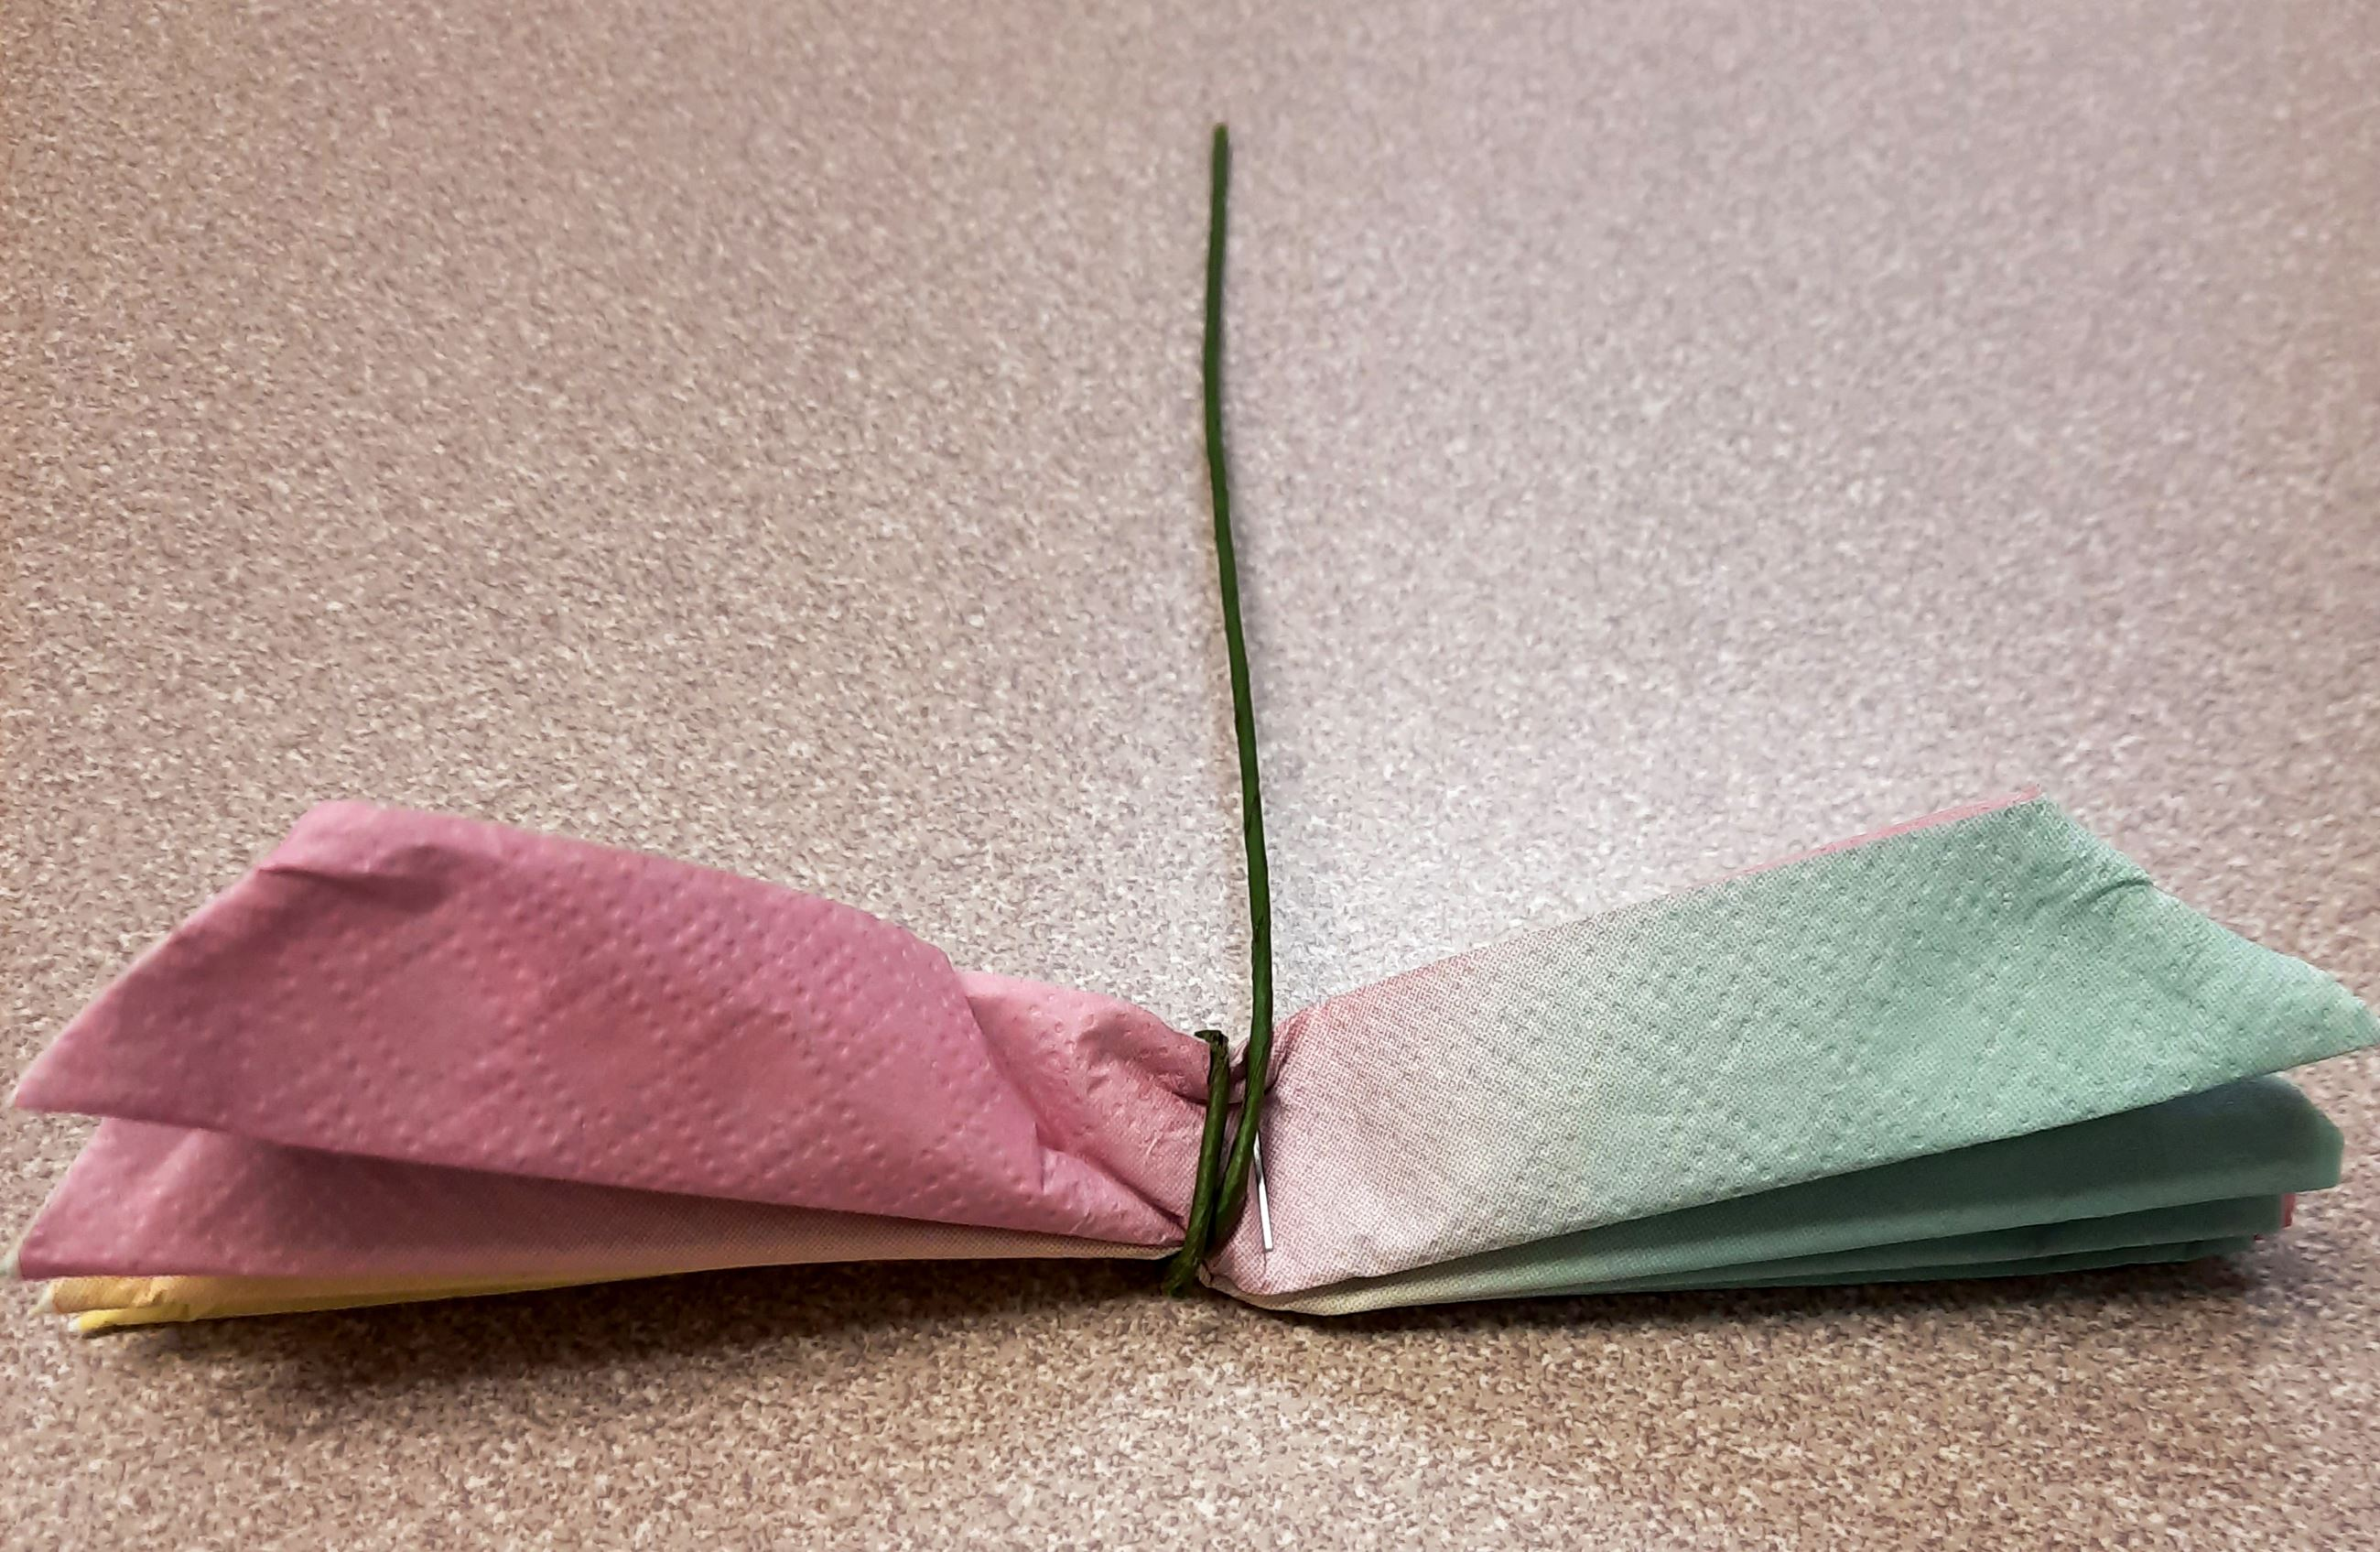 Wrap the floral wire around the middle of the folded napkin.